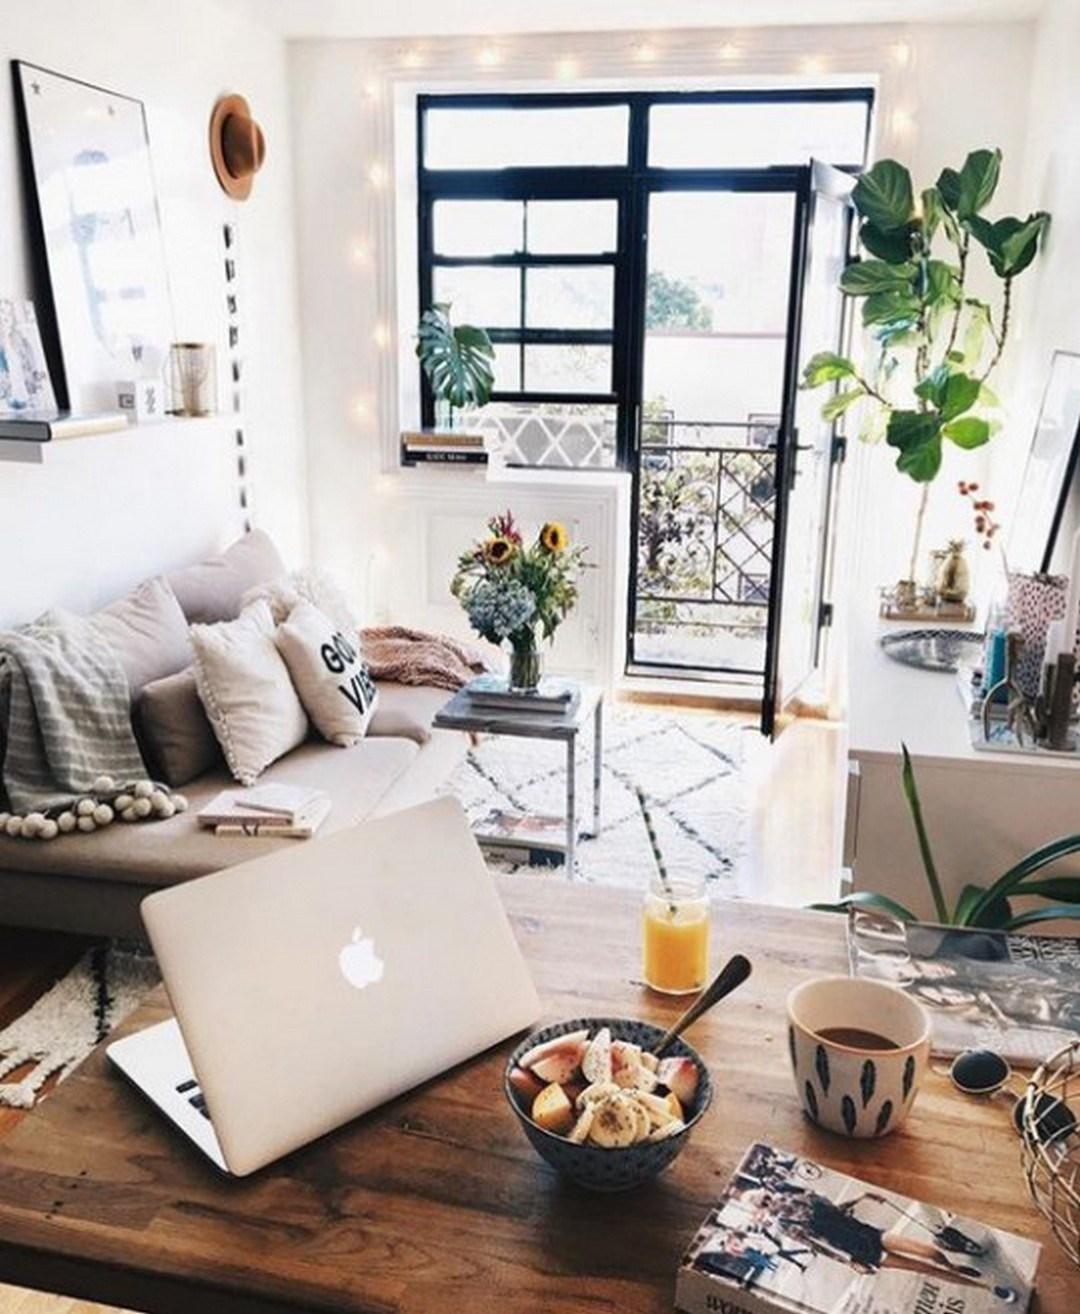 20 Perfect Small Apartment Decorating on a Budget - Decor ... on Apartment Decor Ideas On A Budget  id=34931